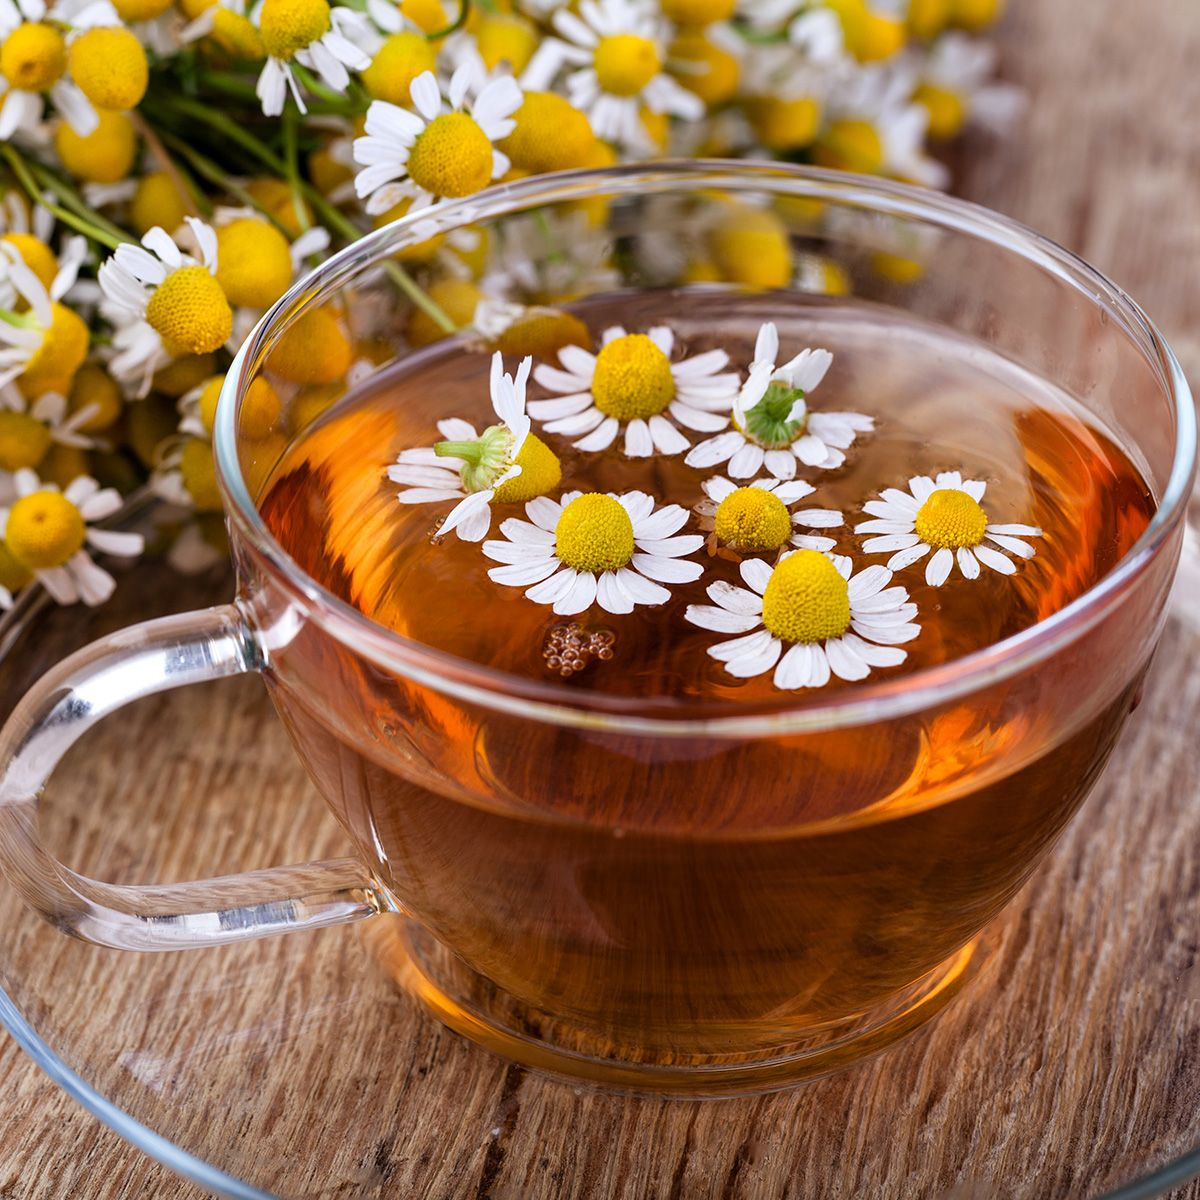 Chinese herbal insomnia tea - Chamomile Is A Gentle Calming And Sedative Tea Made From Flowers That Can Be Helpful For